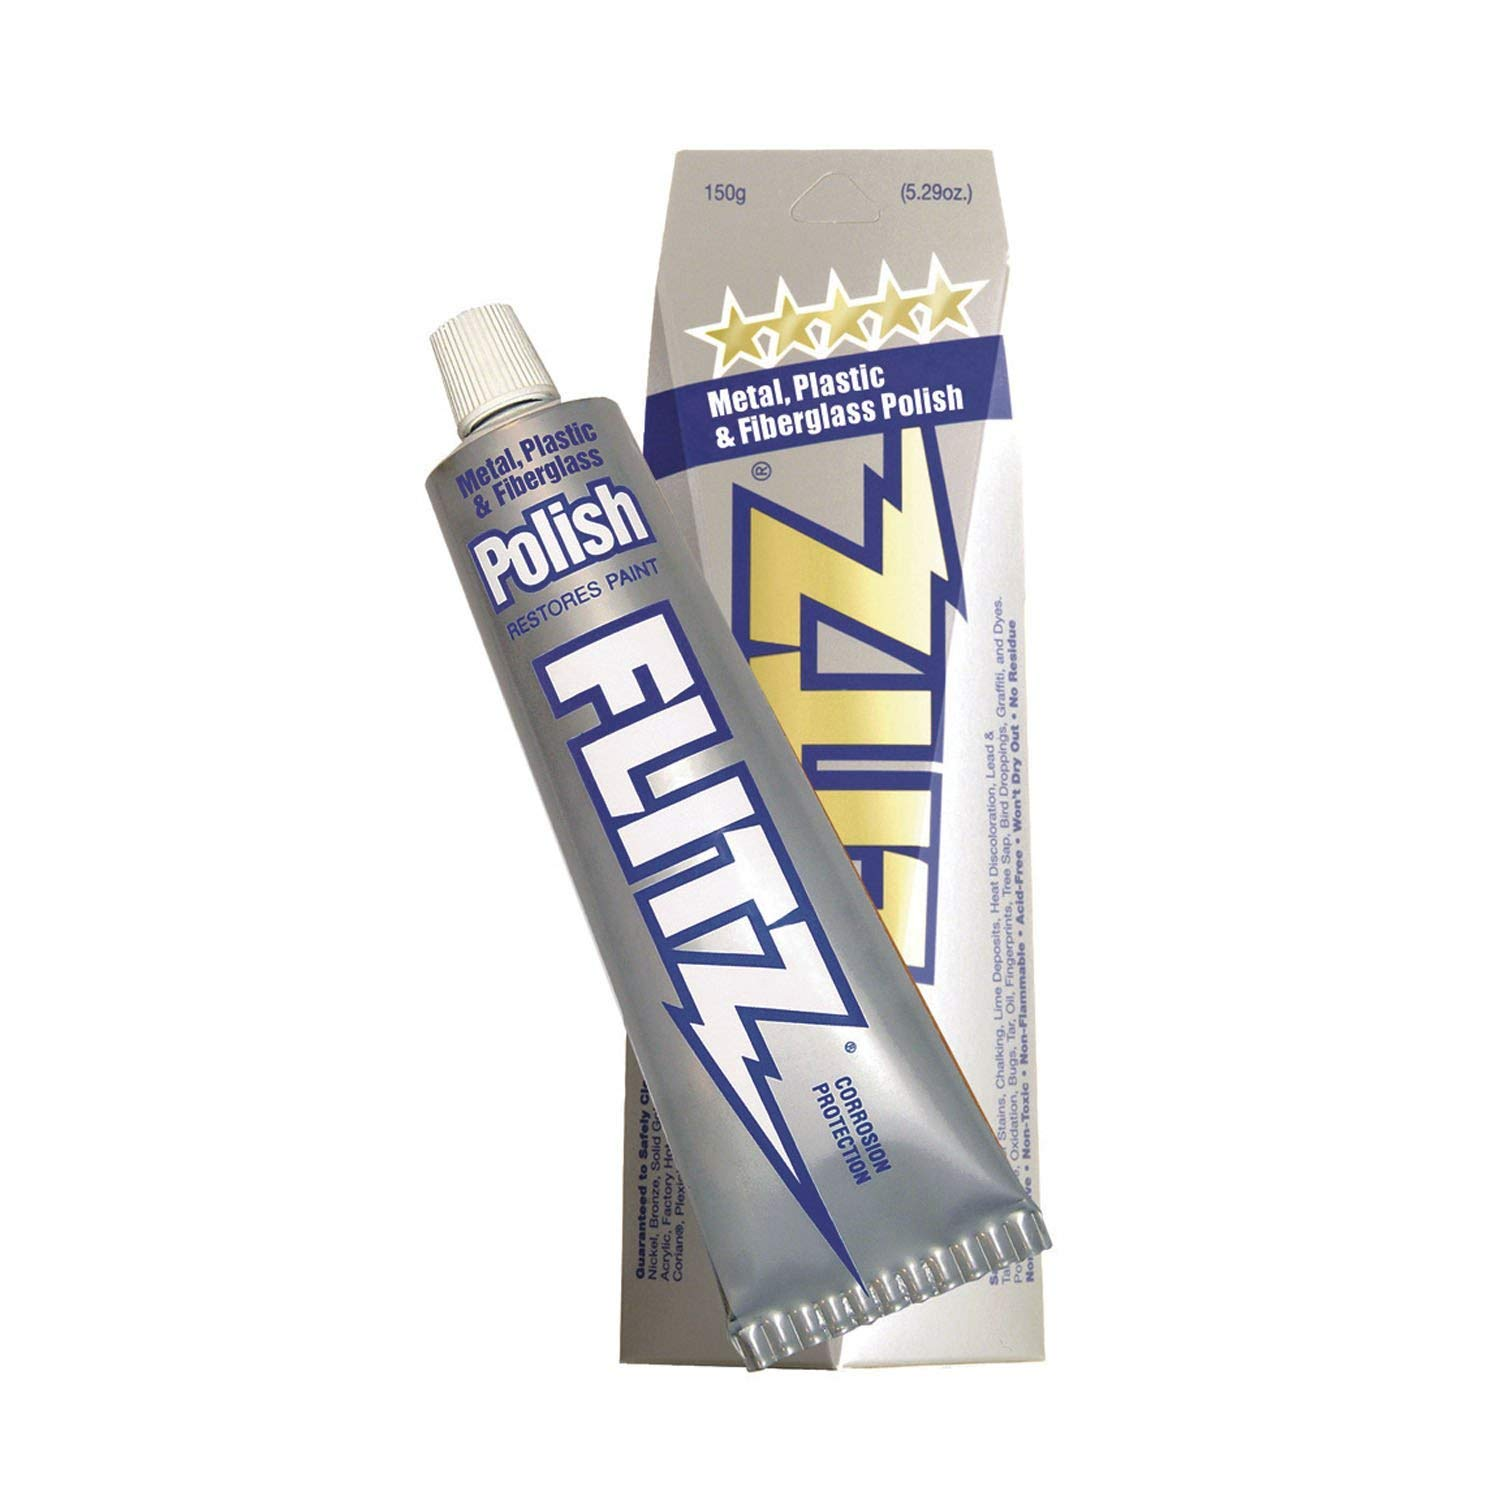 Flitz Polish - Paste - 5.29 oz. Boxed Tube (2)